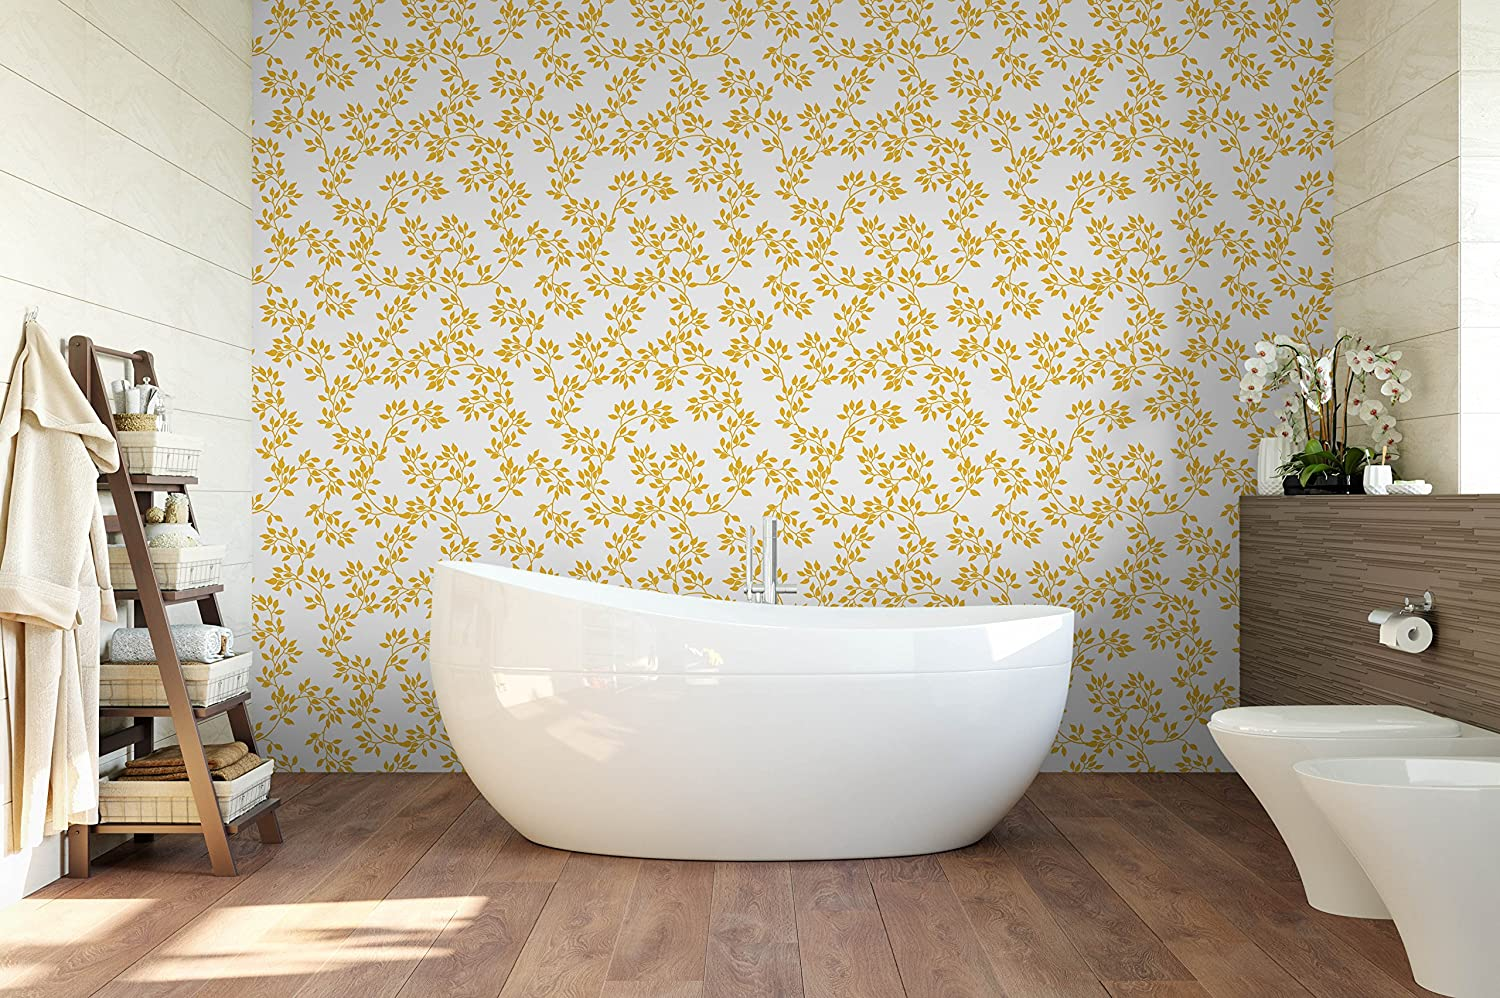 Amazon com temporary gold color structure leaves removable wallpaper print make your walls luxury with self adhesive wall paper handmade